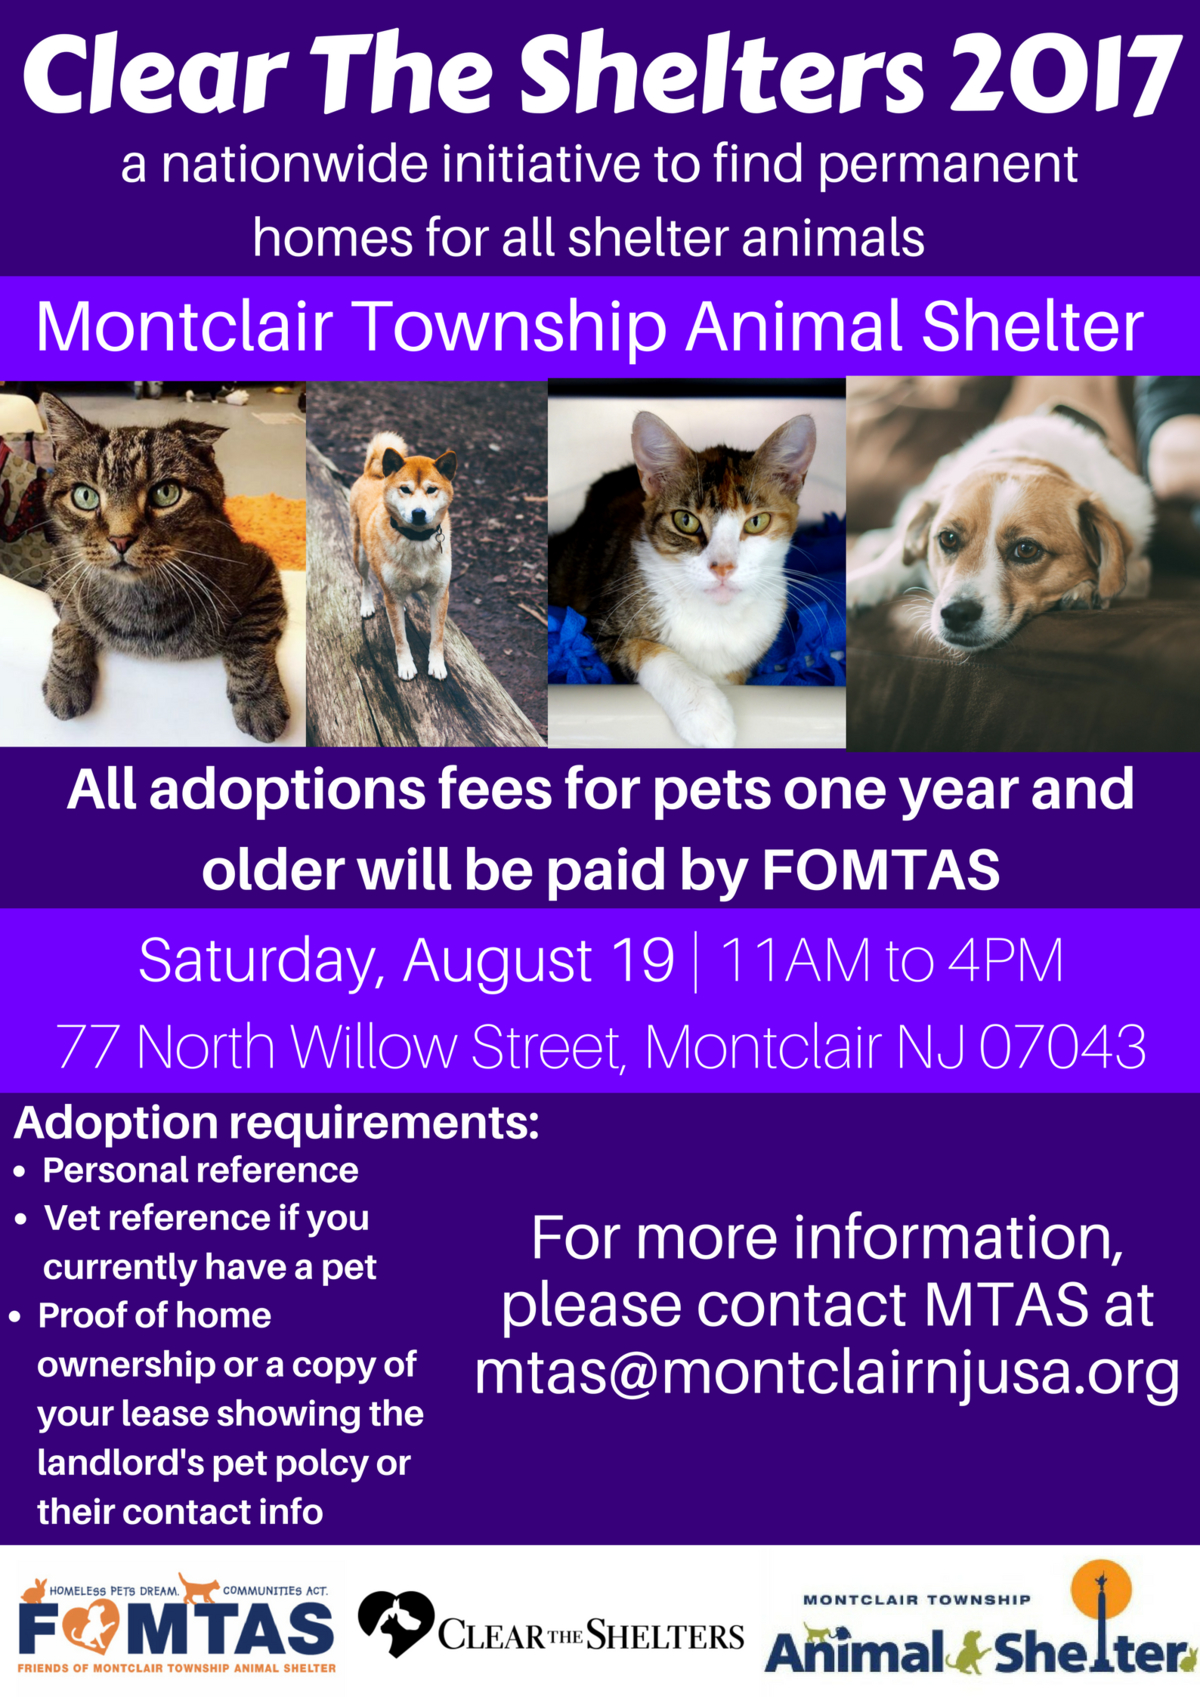 Photo: Friends of Montclair Township Animal Shelter